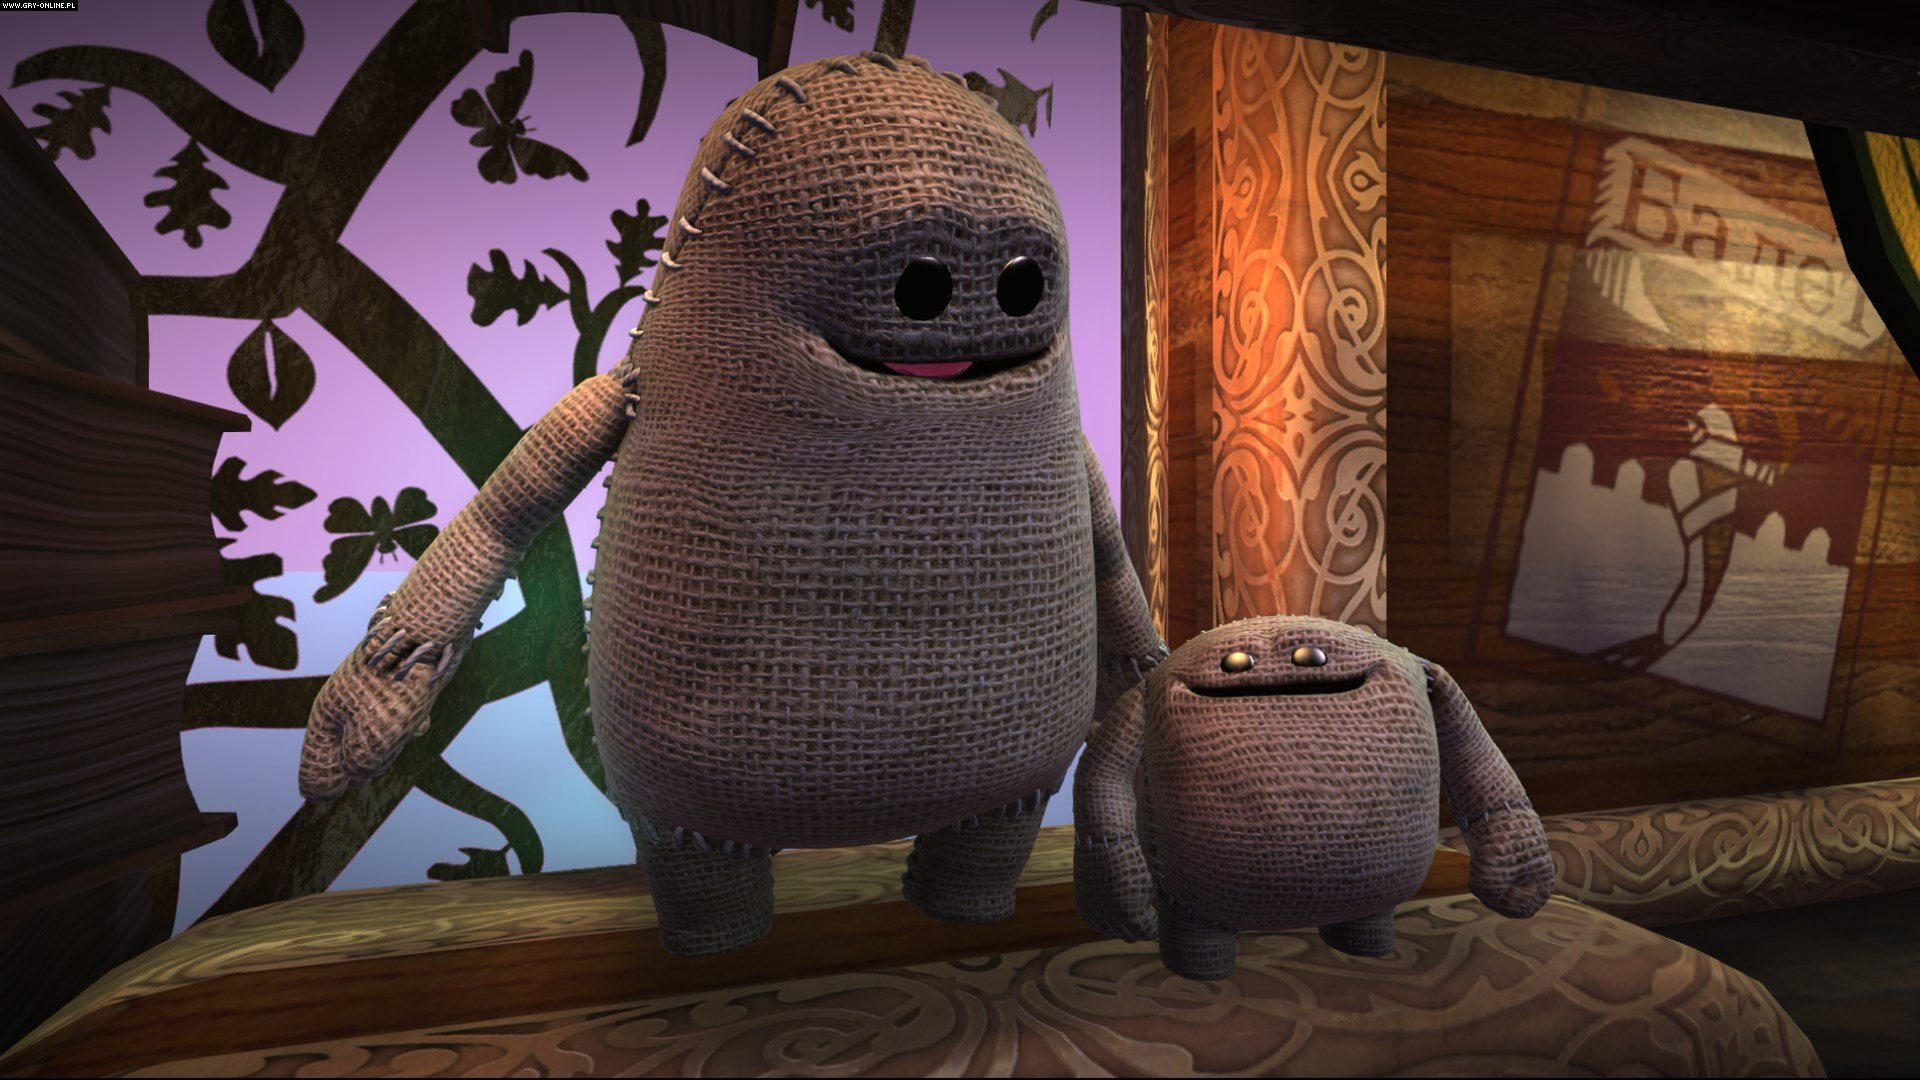 LittleBigPlanet 3 PS3, PS4 Gry Screen 14/37, Sumo Digital, Sony Interactive Entertainment